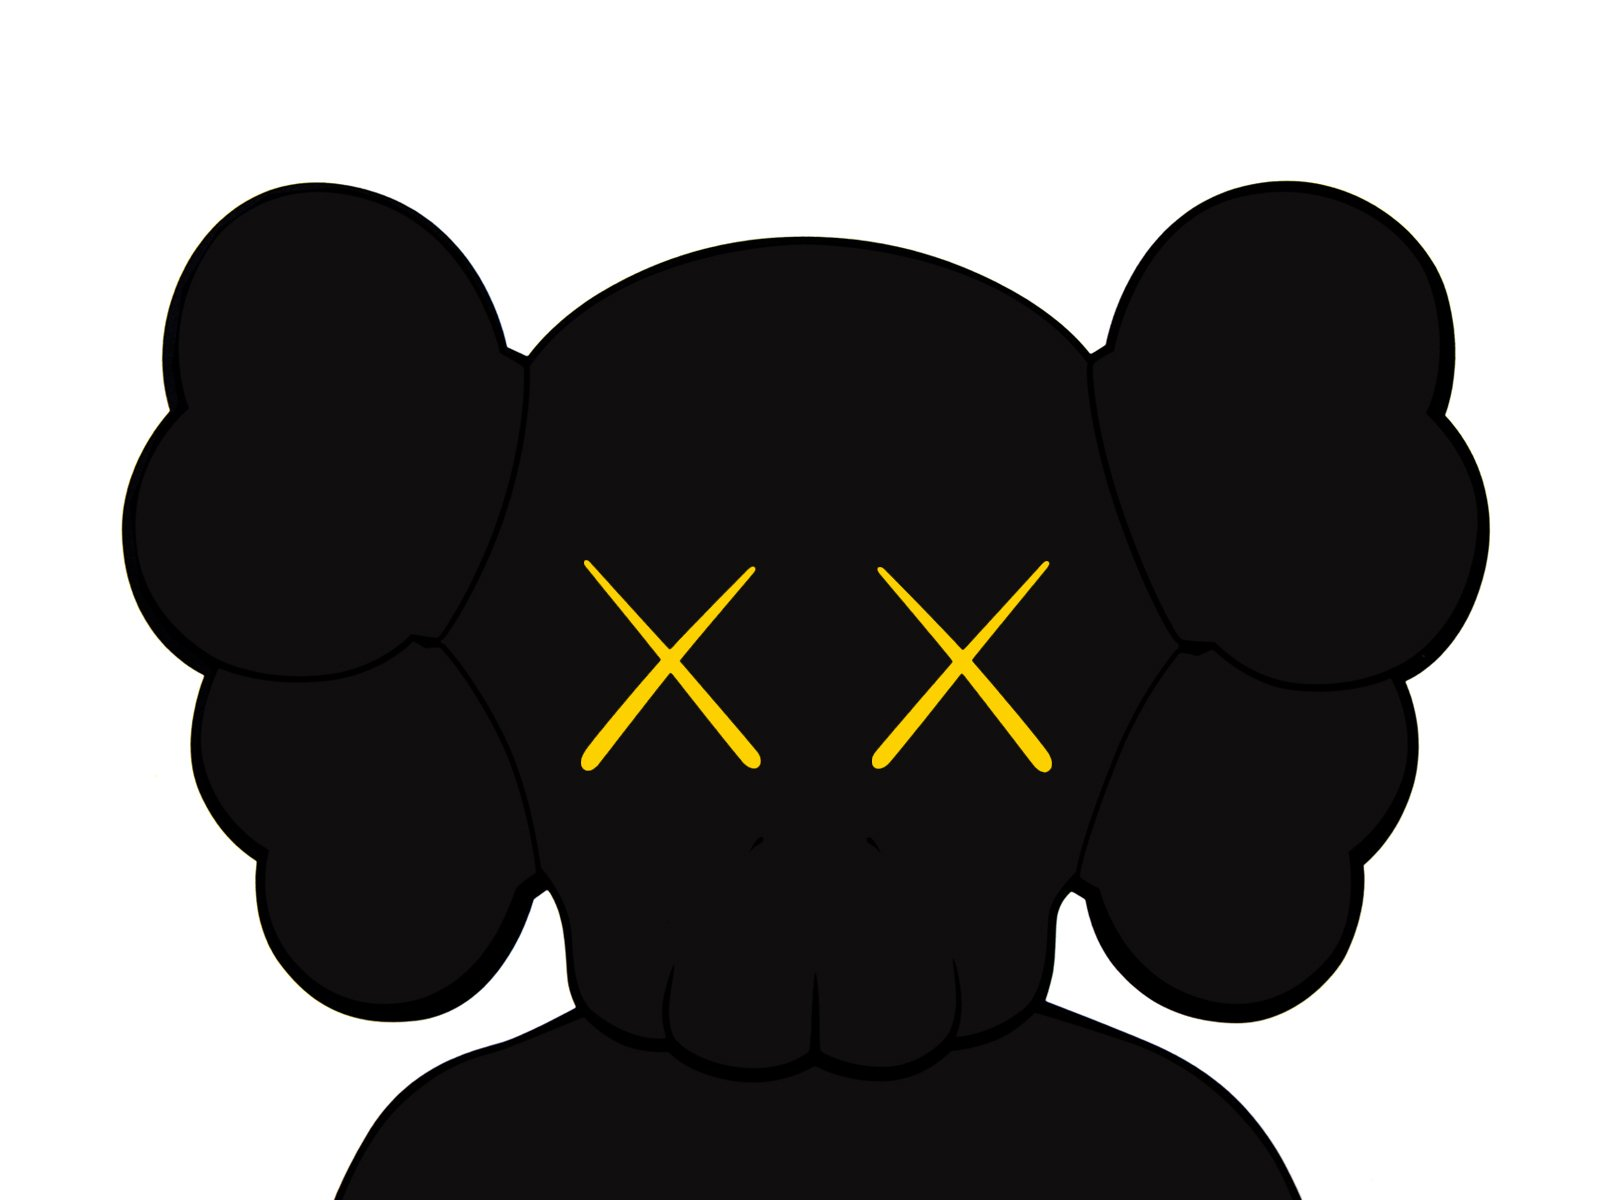 [48+] KAWS HD Wallpaper on WallpaperSafari